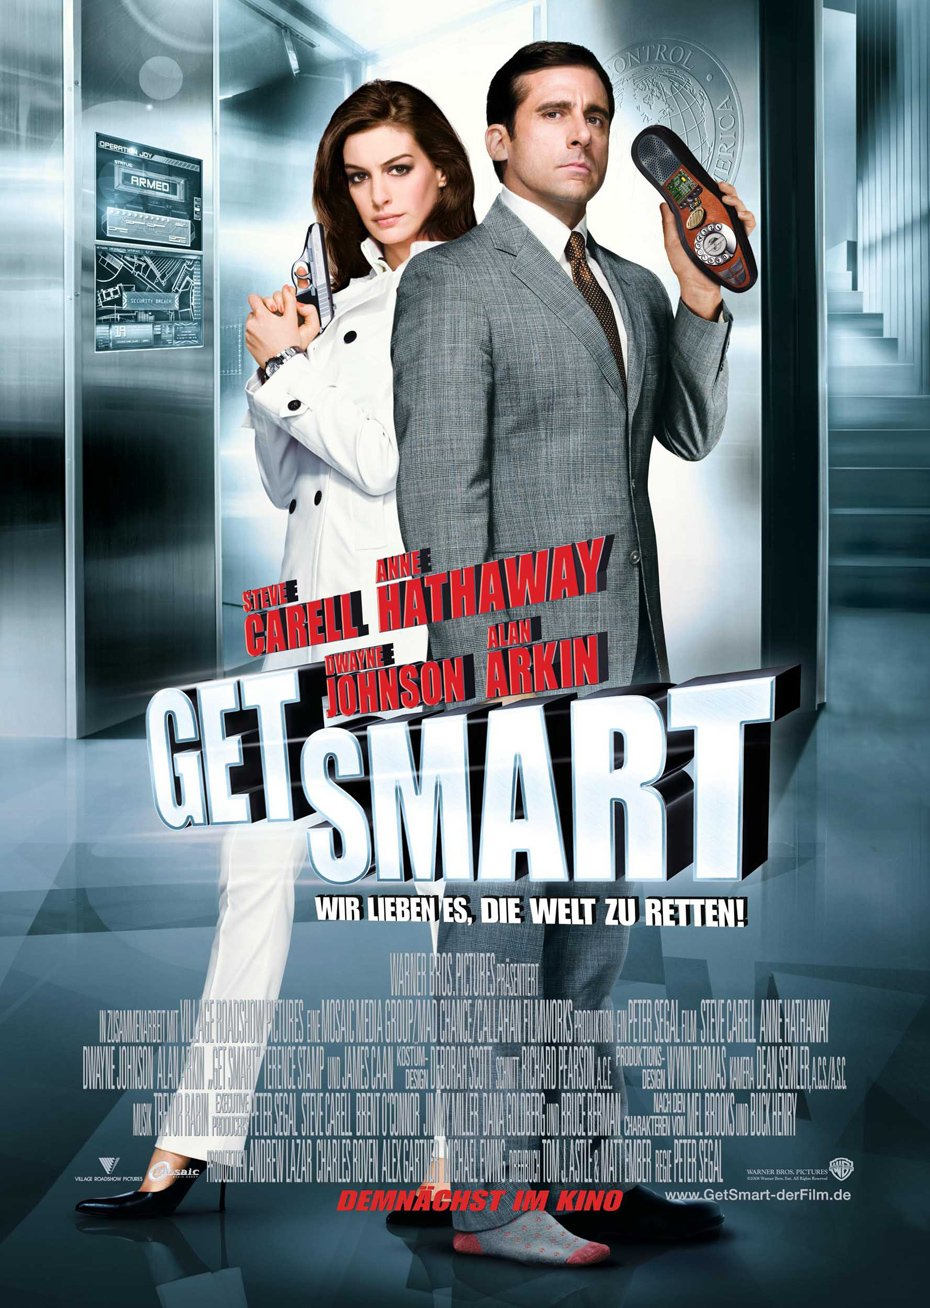 get smart watch movies online download free movies hd